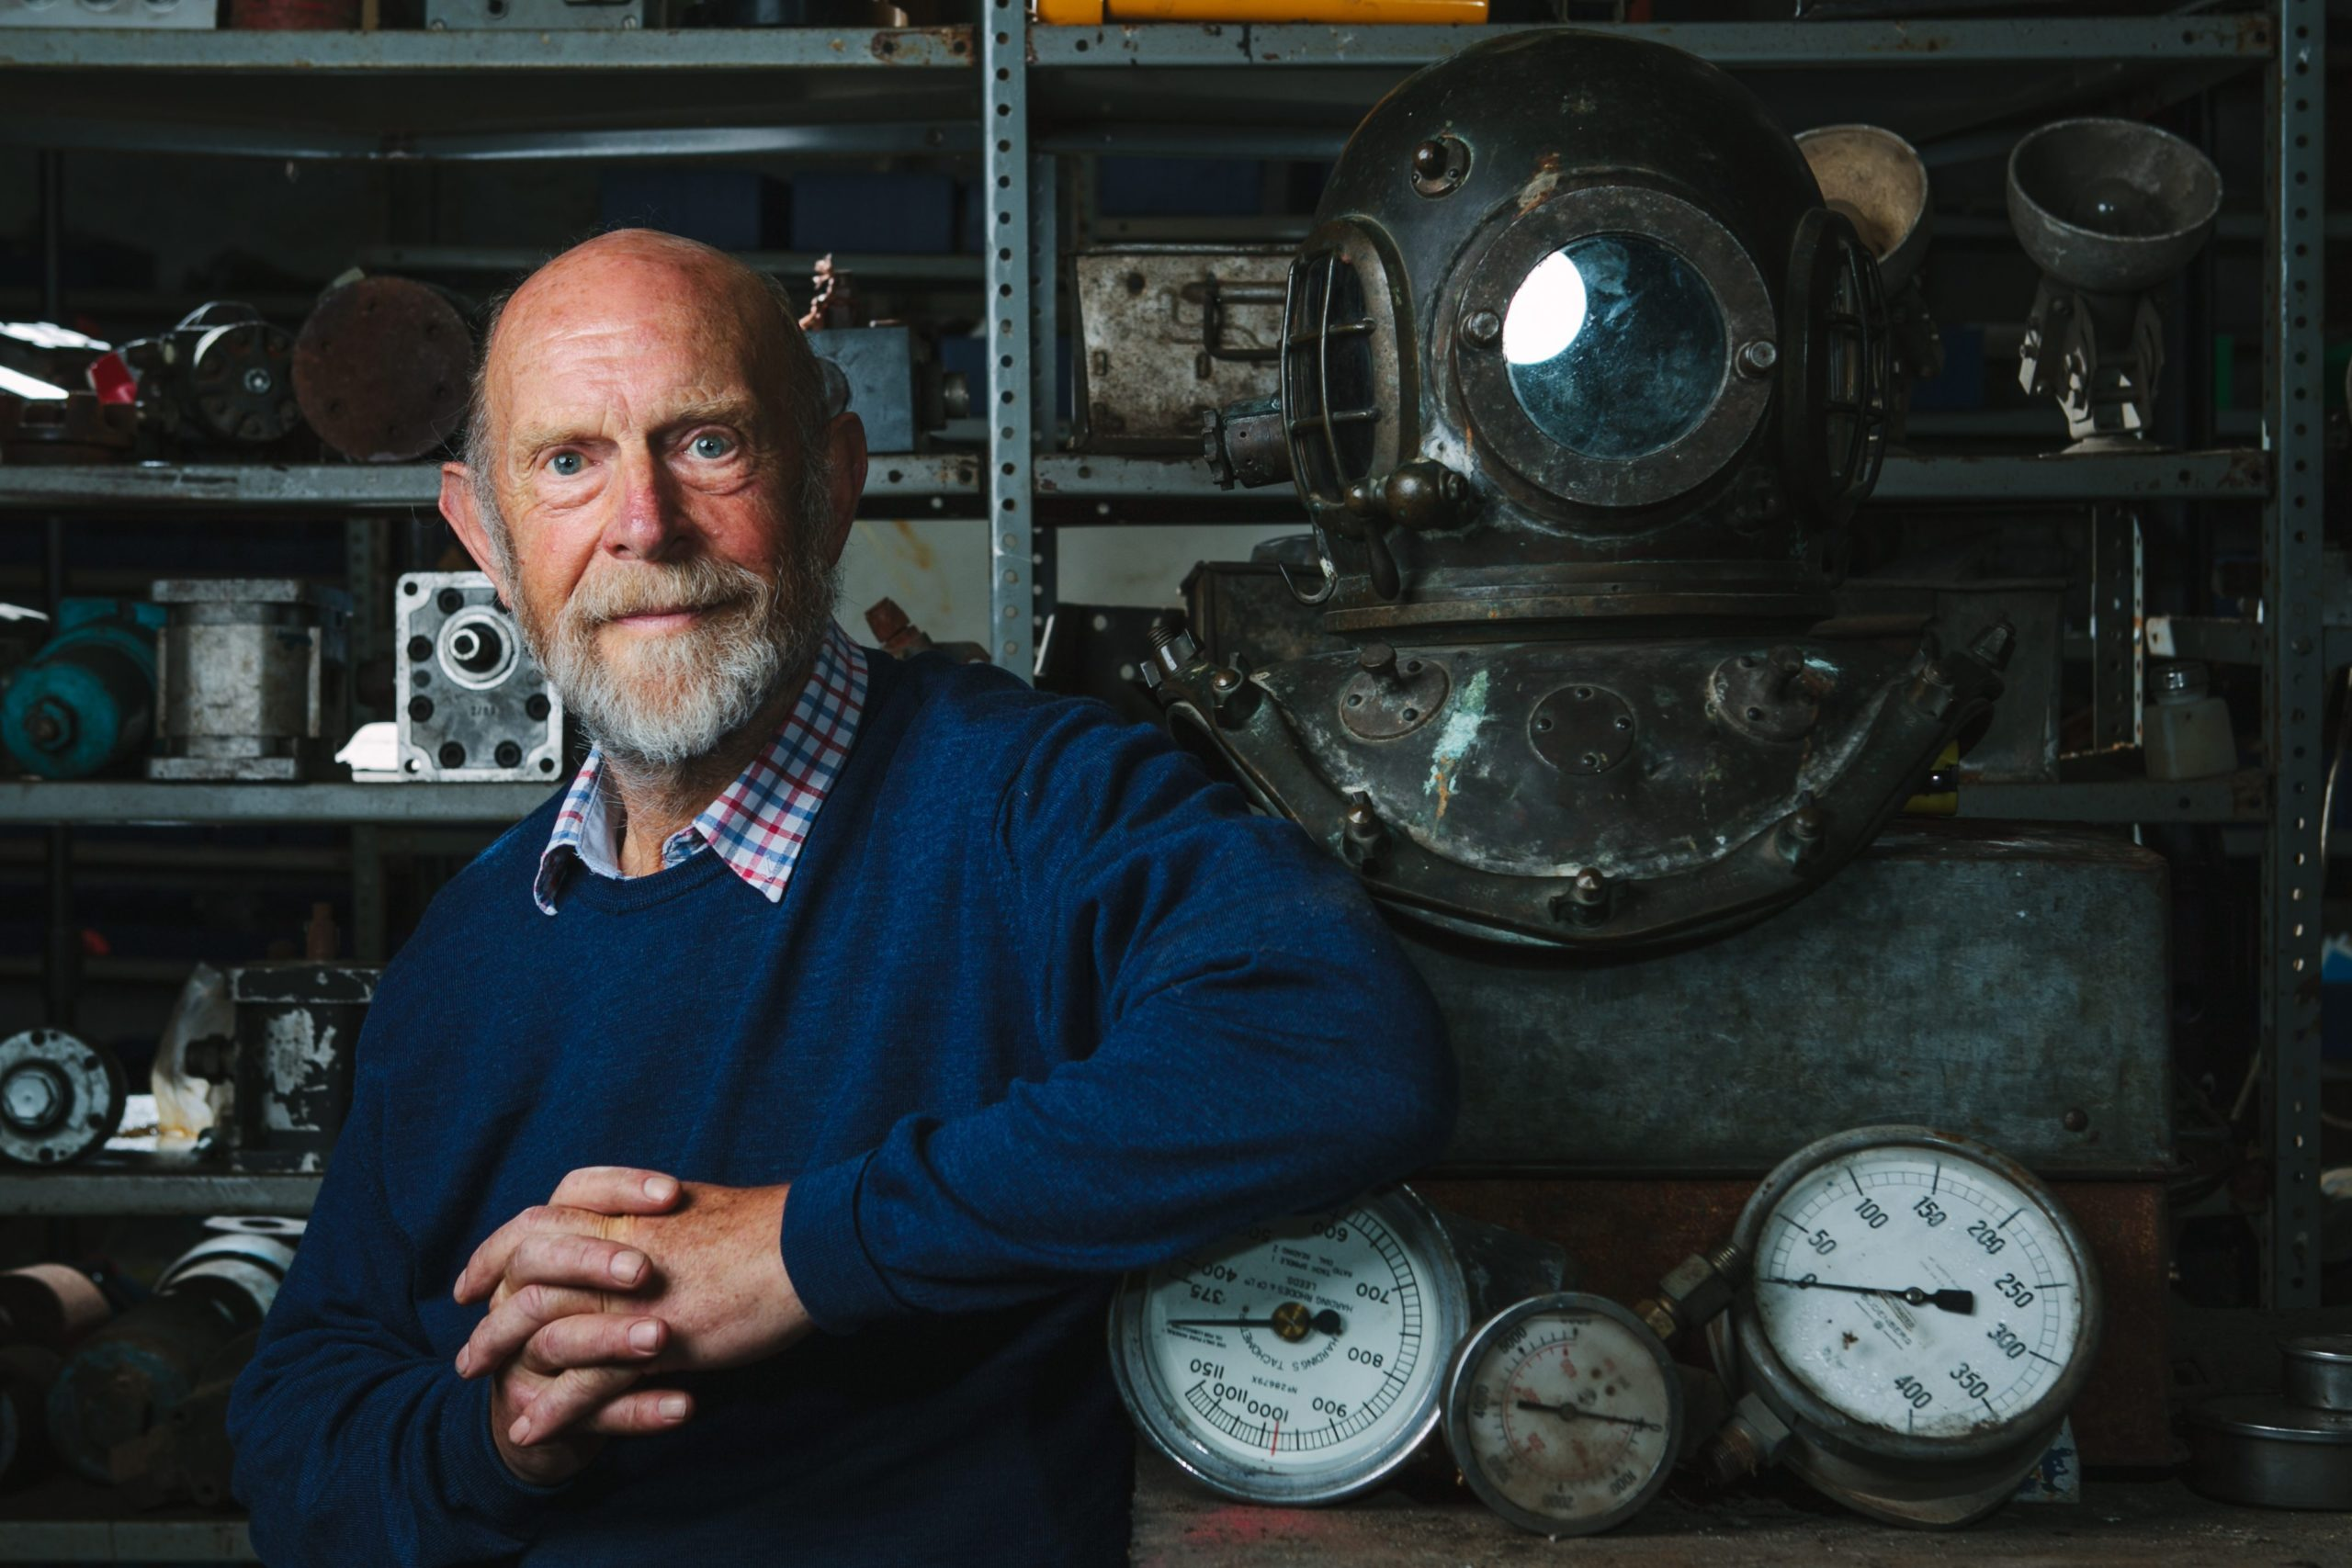 Salvage expert Alec Crawford at home in Newport-on-Tay, Fife, with artefacts from his dives